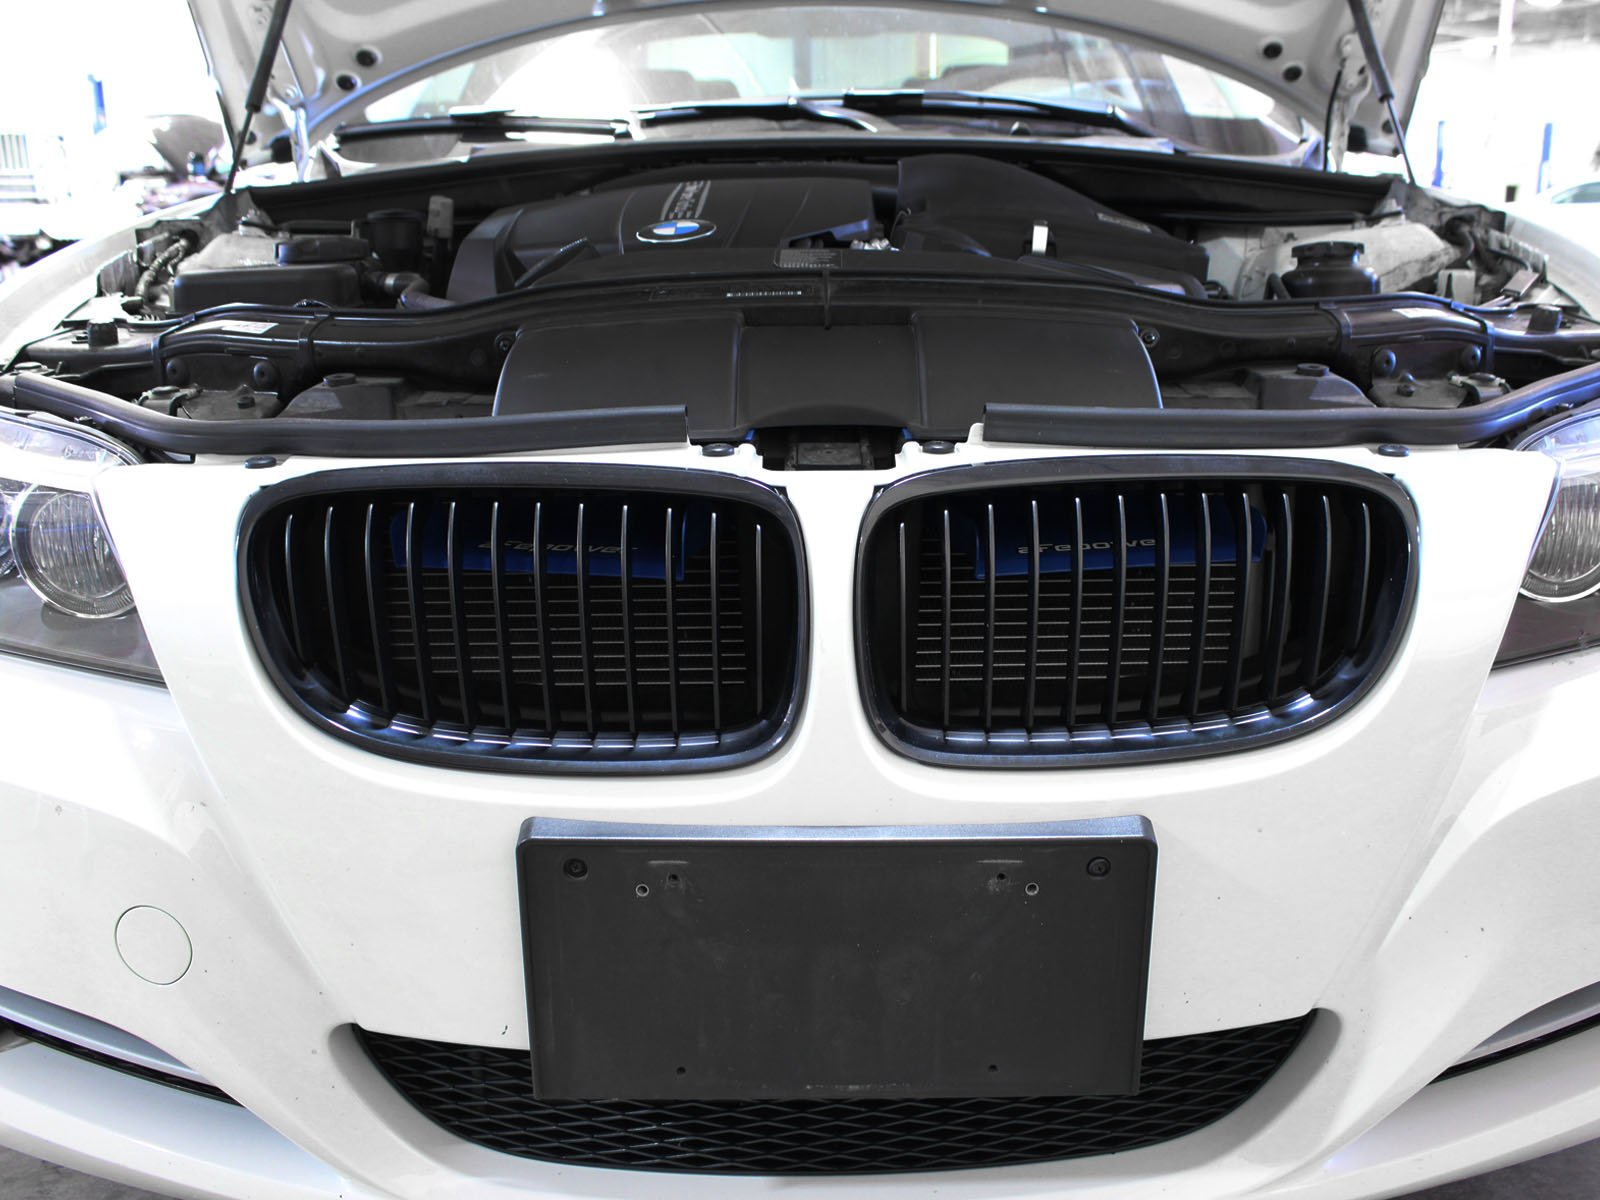 aFe Power Magnum FORCE 54-11478-L BMW 3-Series (E9x) Intake System Scoops (Matte Blue) by aFe Power (Image #6)